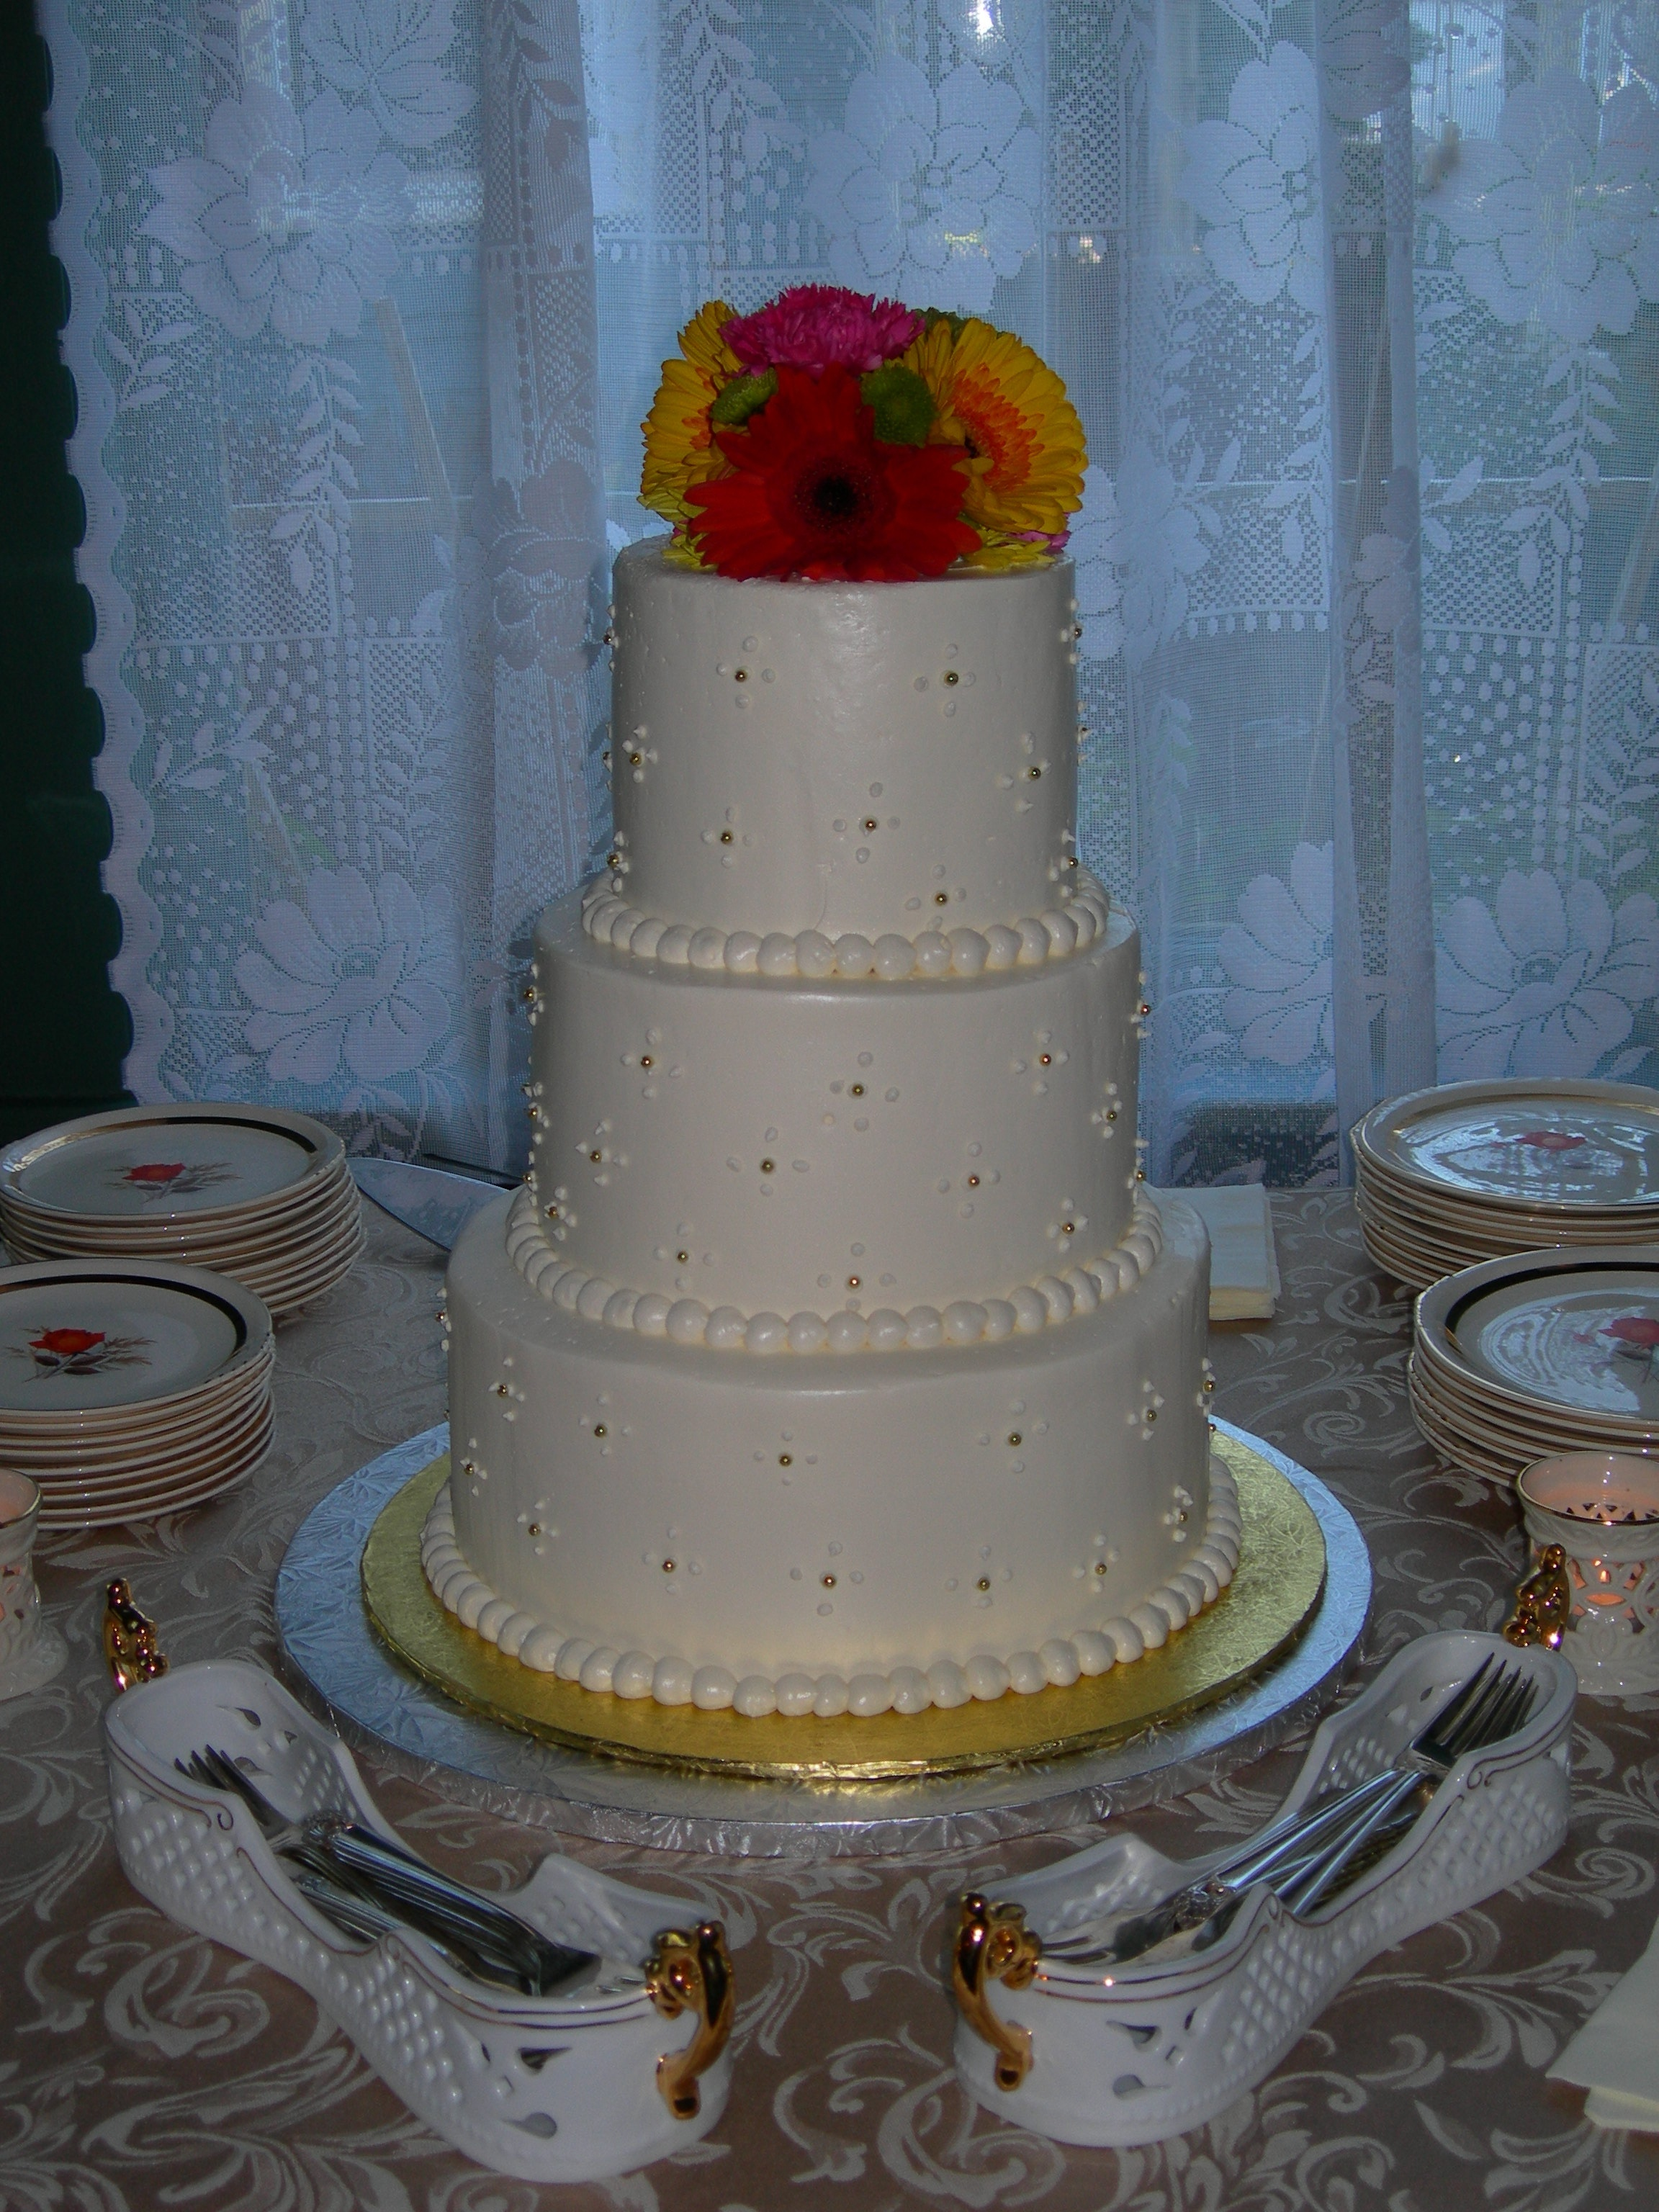 Cakes, Registry, cake, Bed, Bedding, And, Breakfast, Inn, Street, Manor, Main, main street manor bed breakfast inn, Flowery